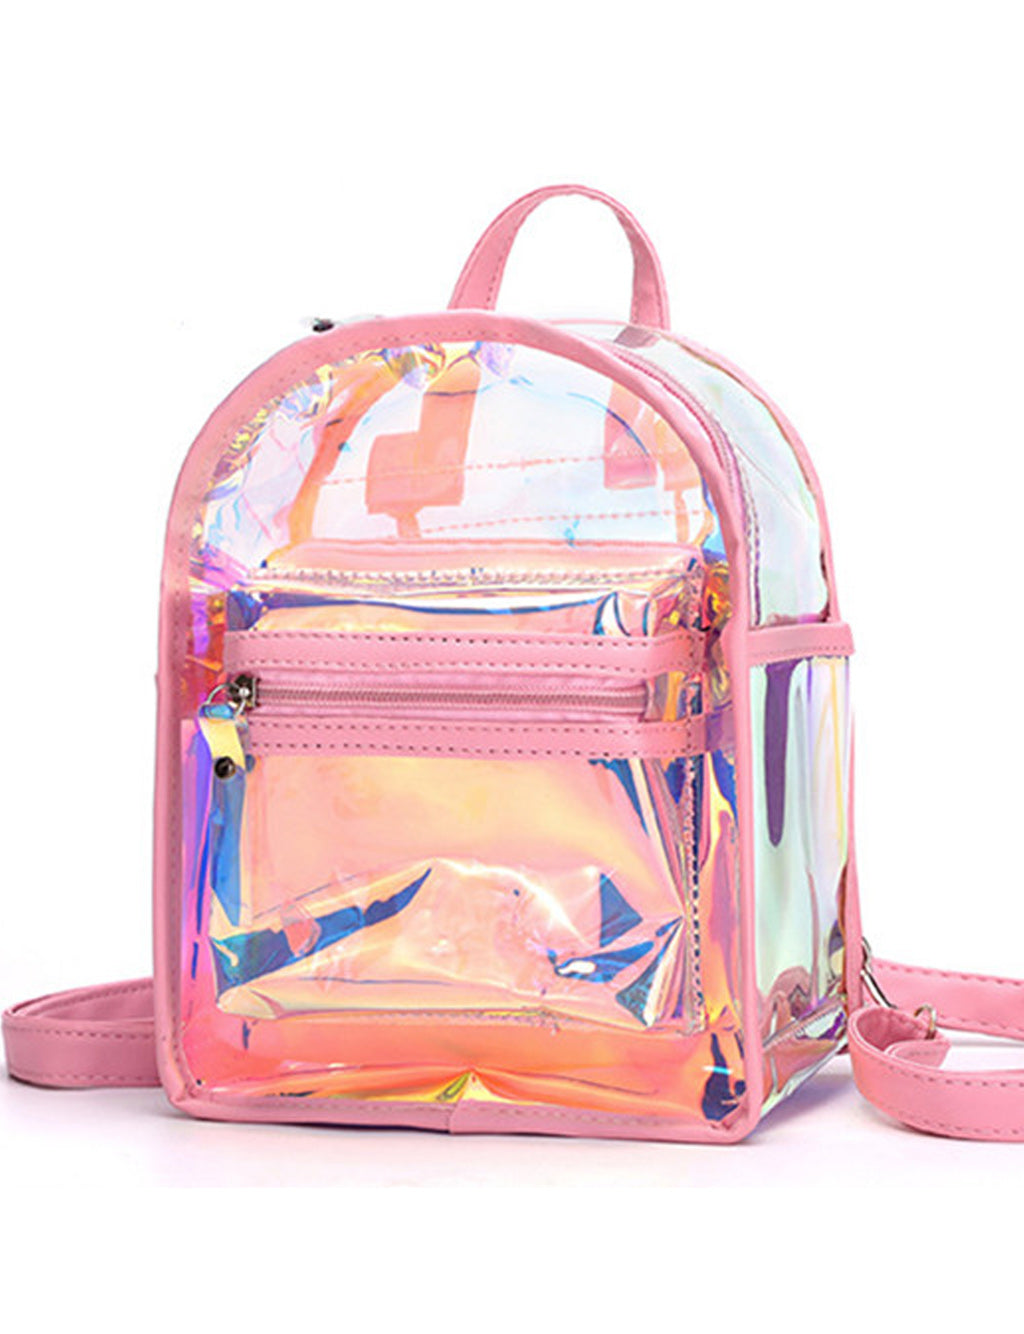 HOLO MANIA BACKPACK - PINK